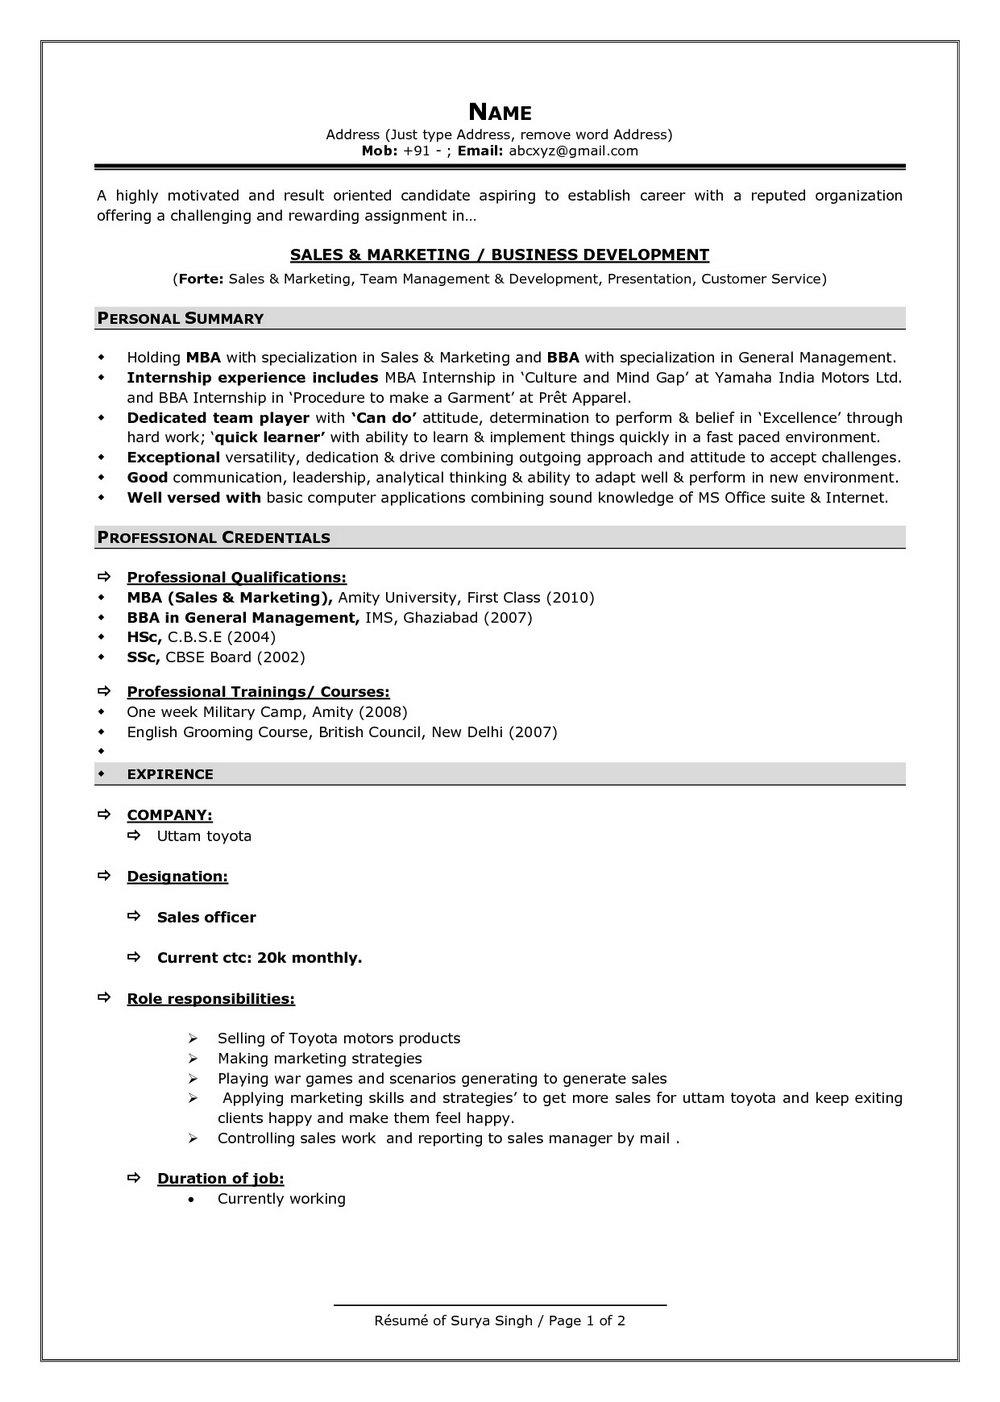 New Resume Format For Freshers 2014